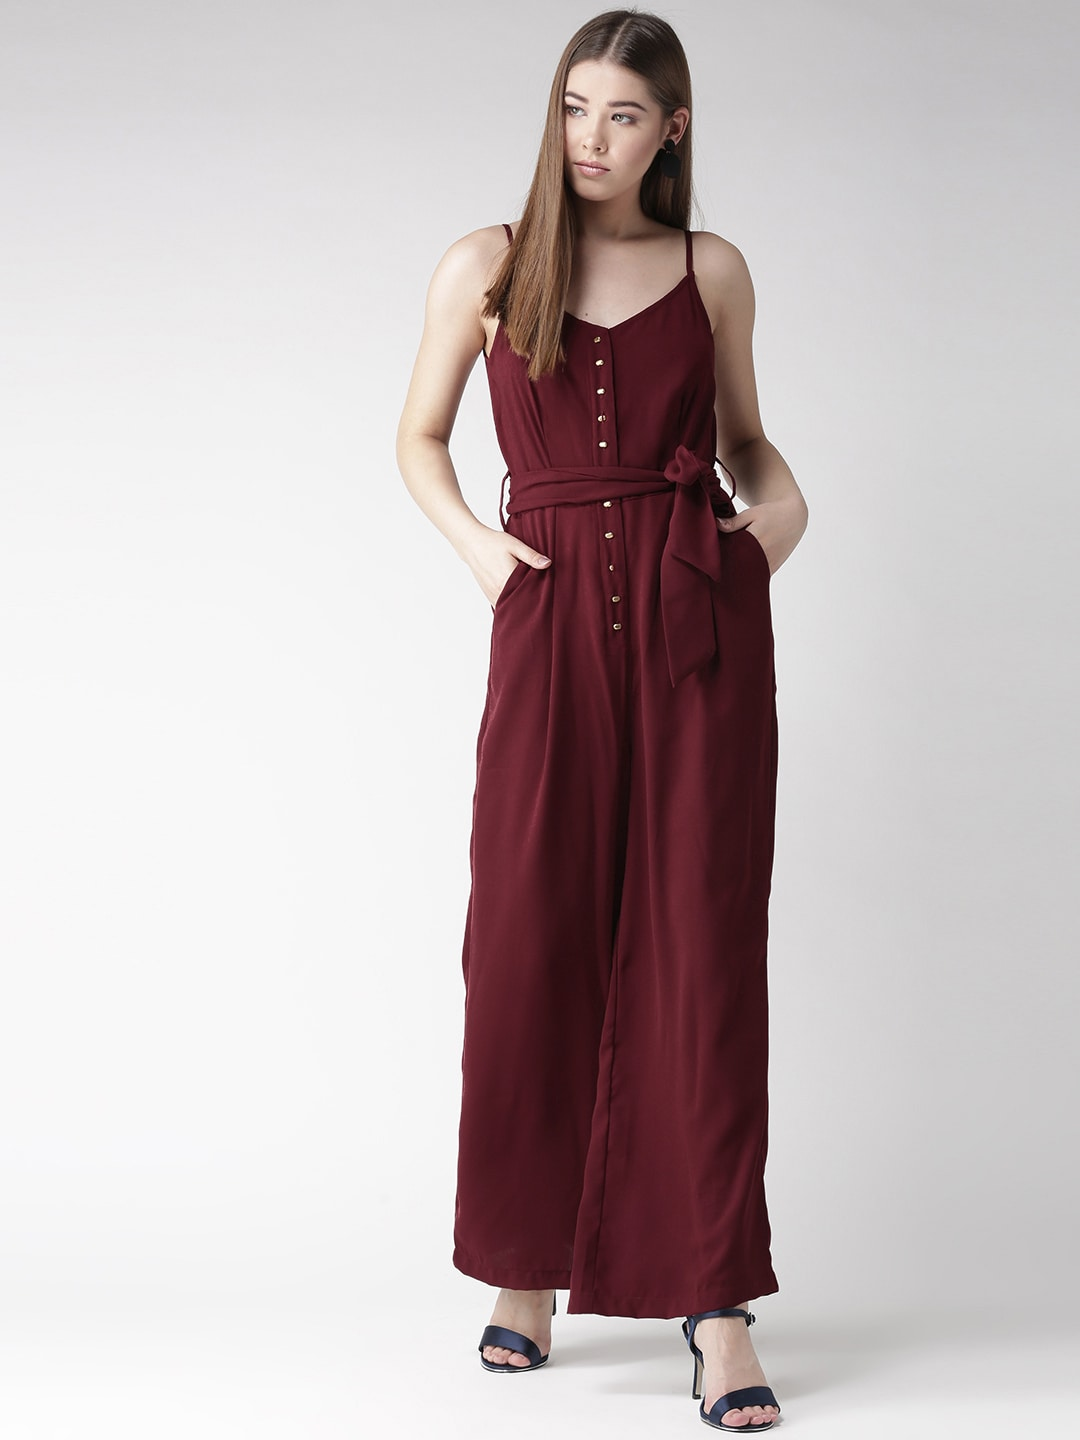 1e6f3703c7aa Women Jumpsuits Rompers - Buy Women Jumpsuits Rompers Online in India